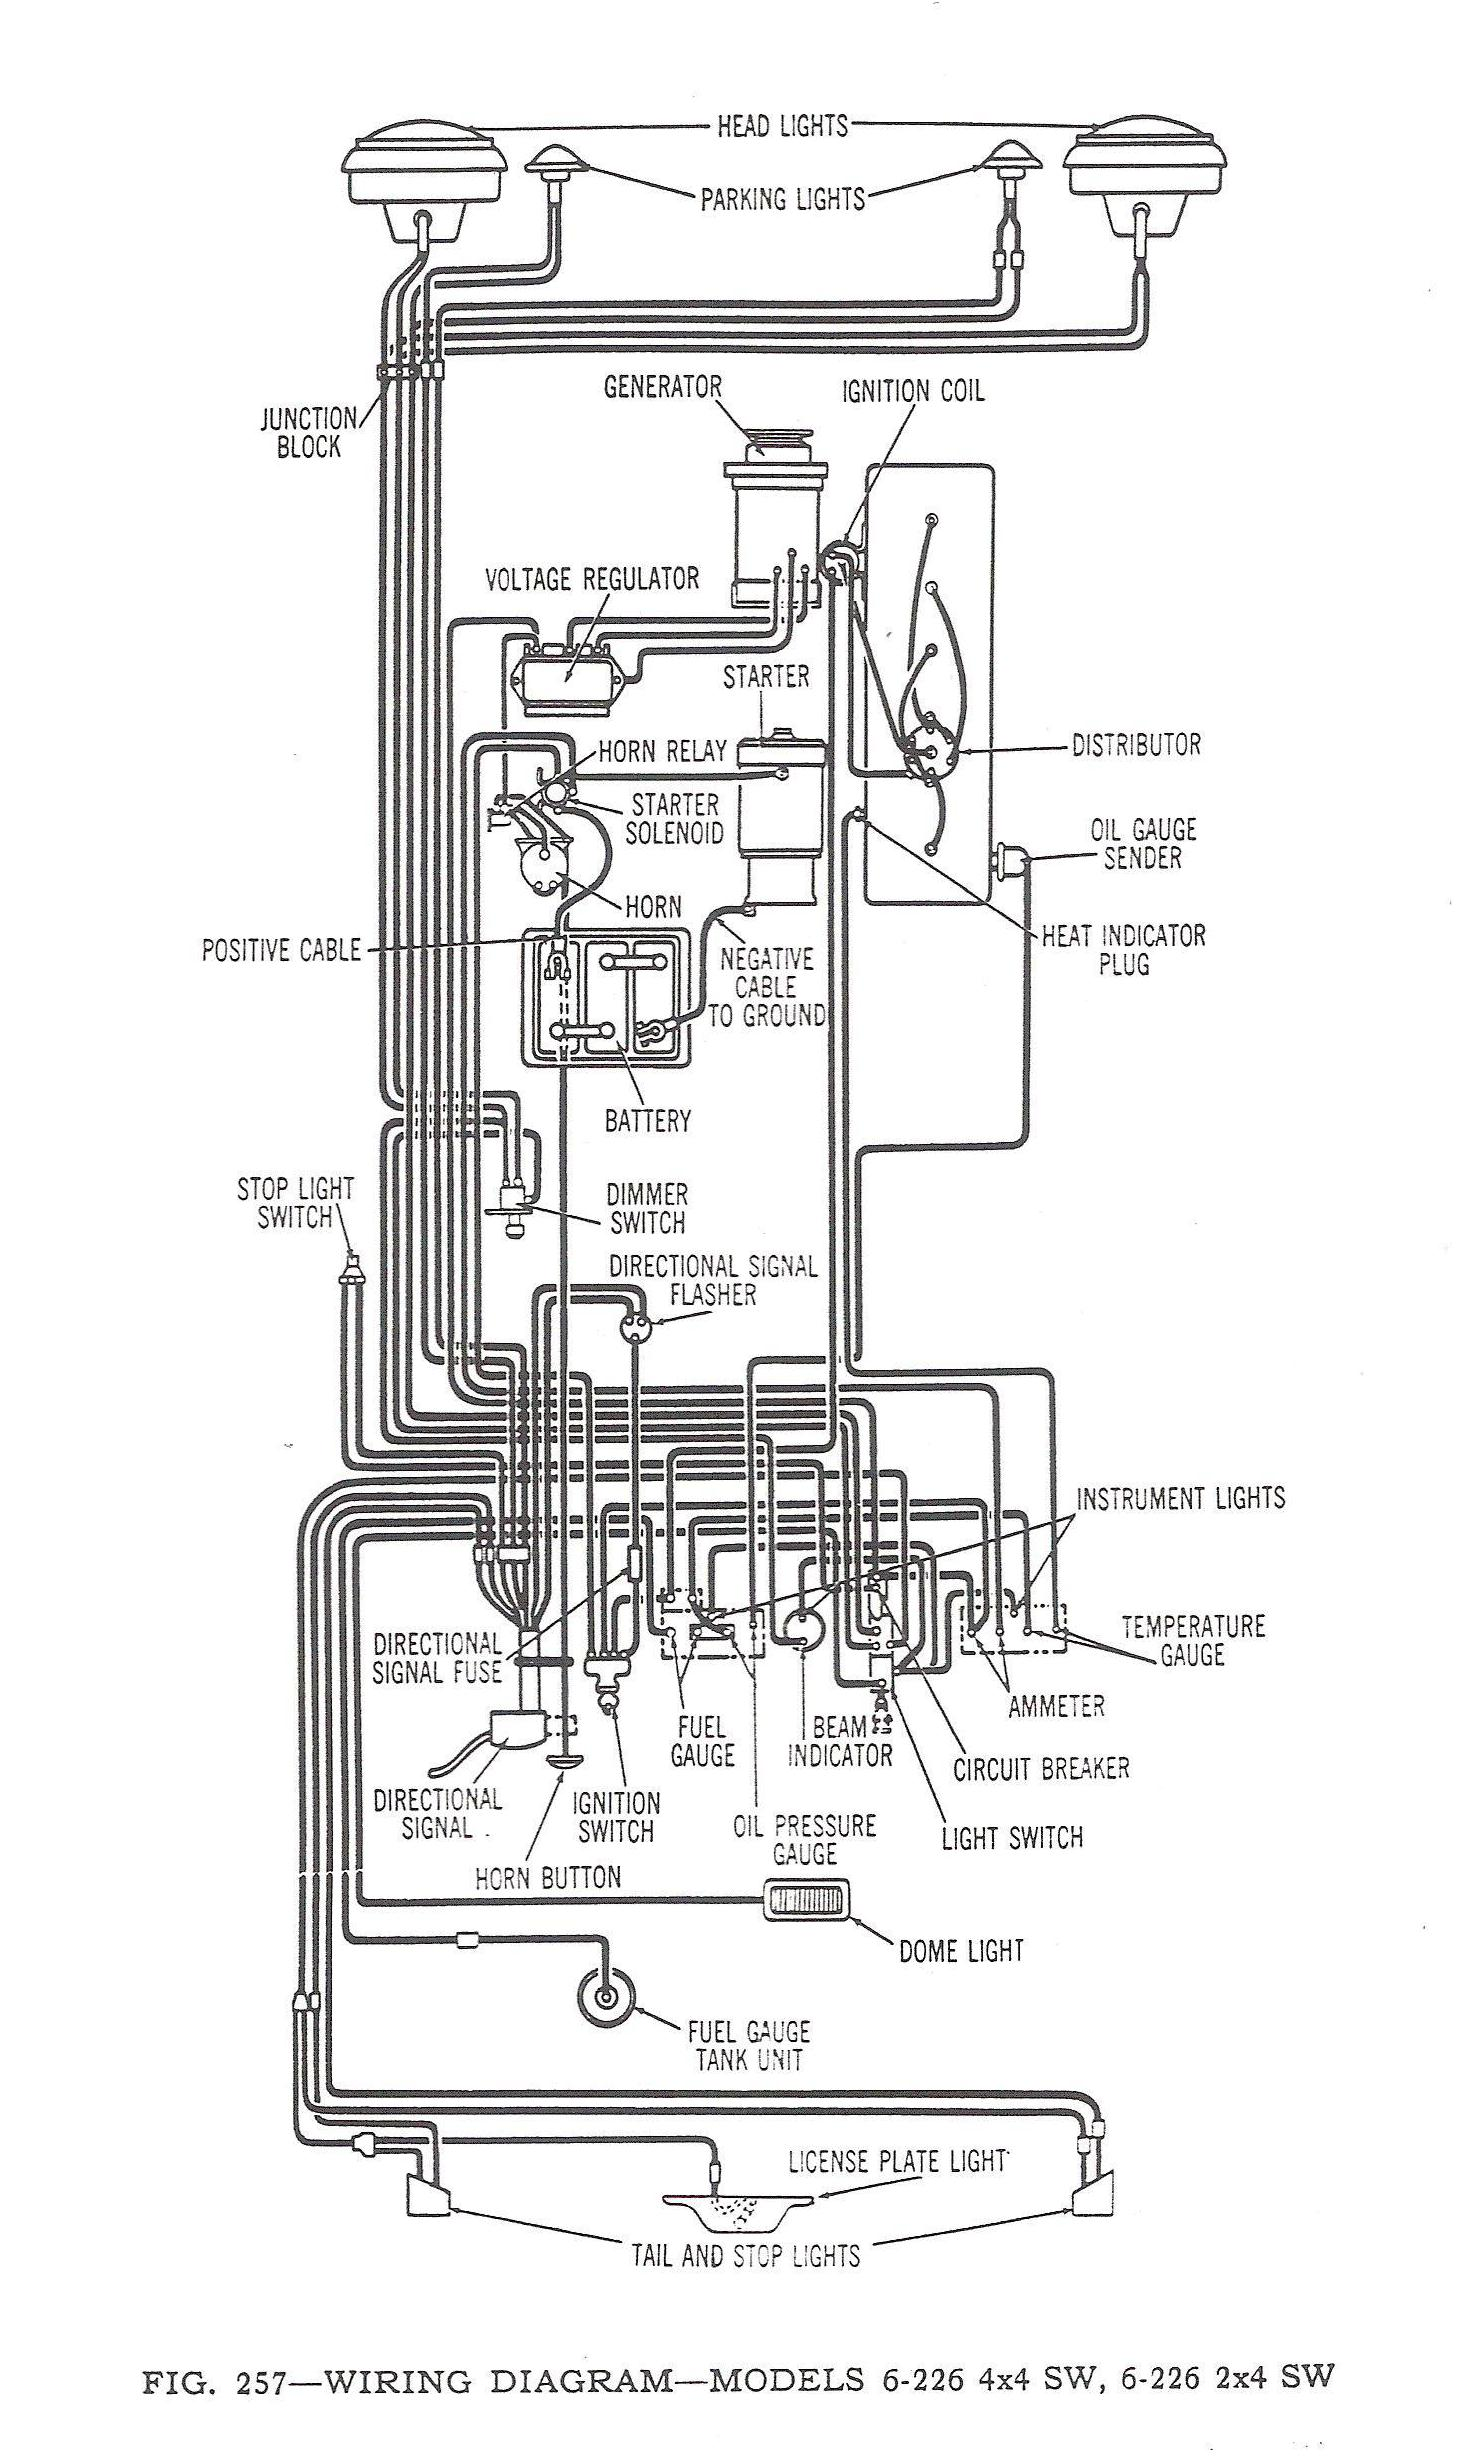 1955 Willys Wagon Wiring Diagram Passat Wagon Fuse Diagram For Wiring Diagram Schematics